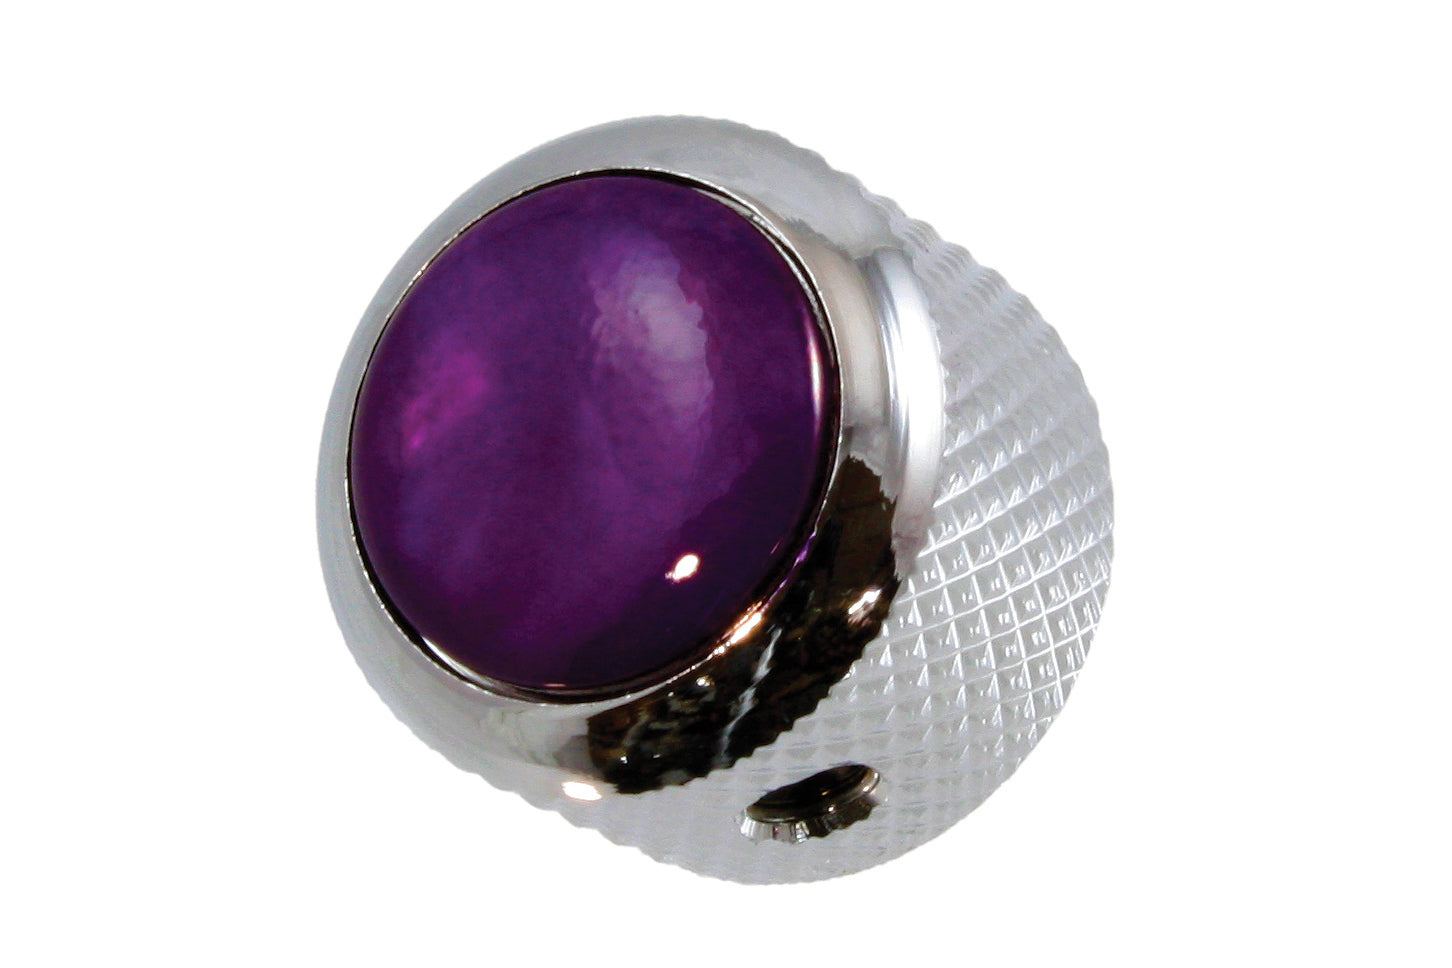 MK-3187 Q-Parts Purple Pearloid Metal Knob